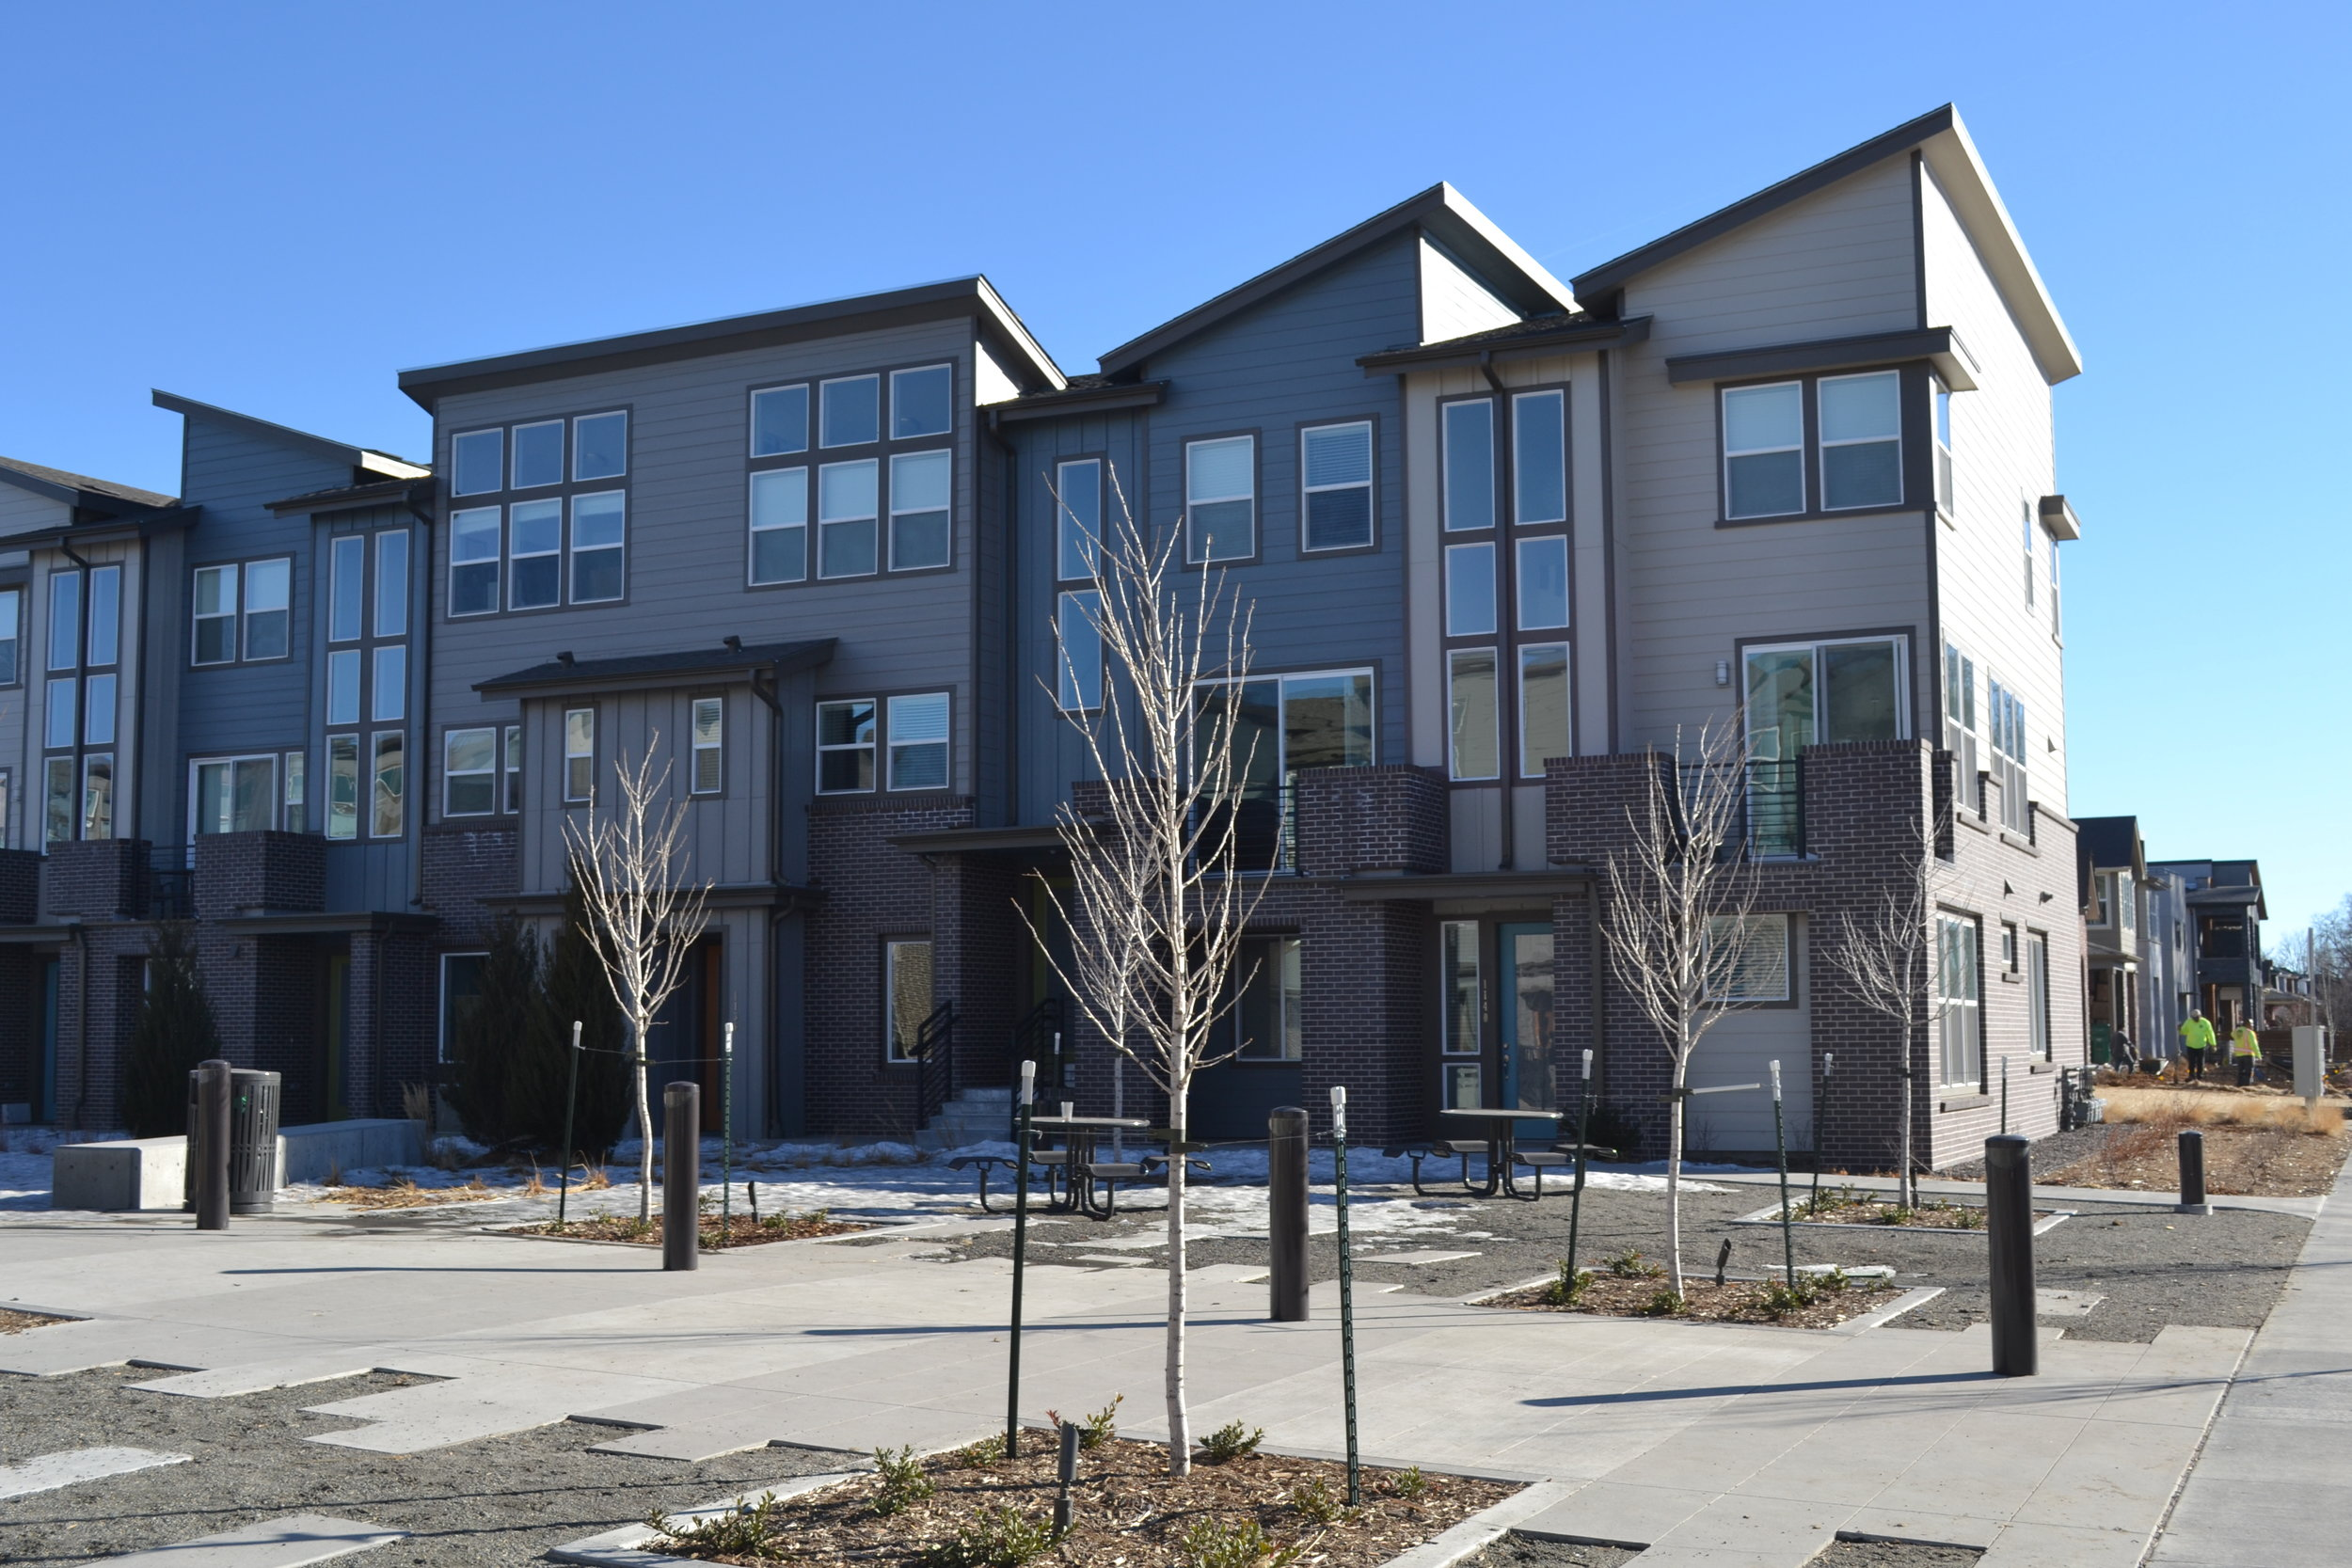 New Town Homes at the former Gates Rubber factory site on land previously zoned Industrial that STARBOARD rezoned to Transit Mixed Use Zoning, enabling new infill development.